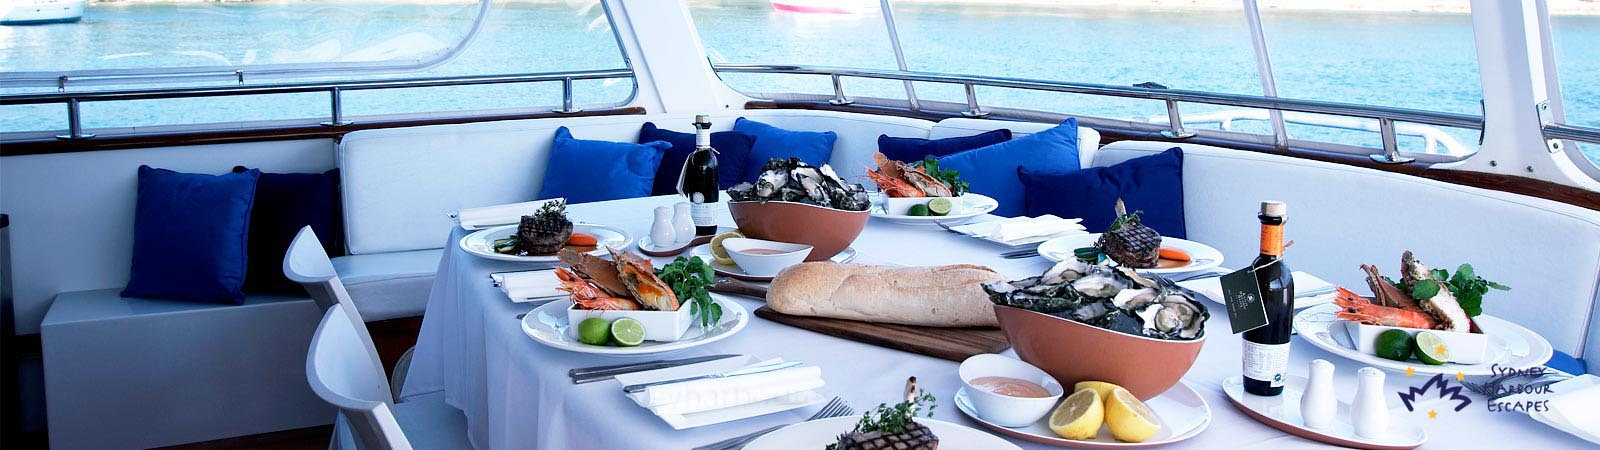 Catered Cruises